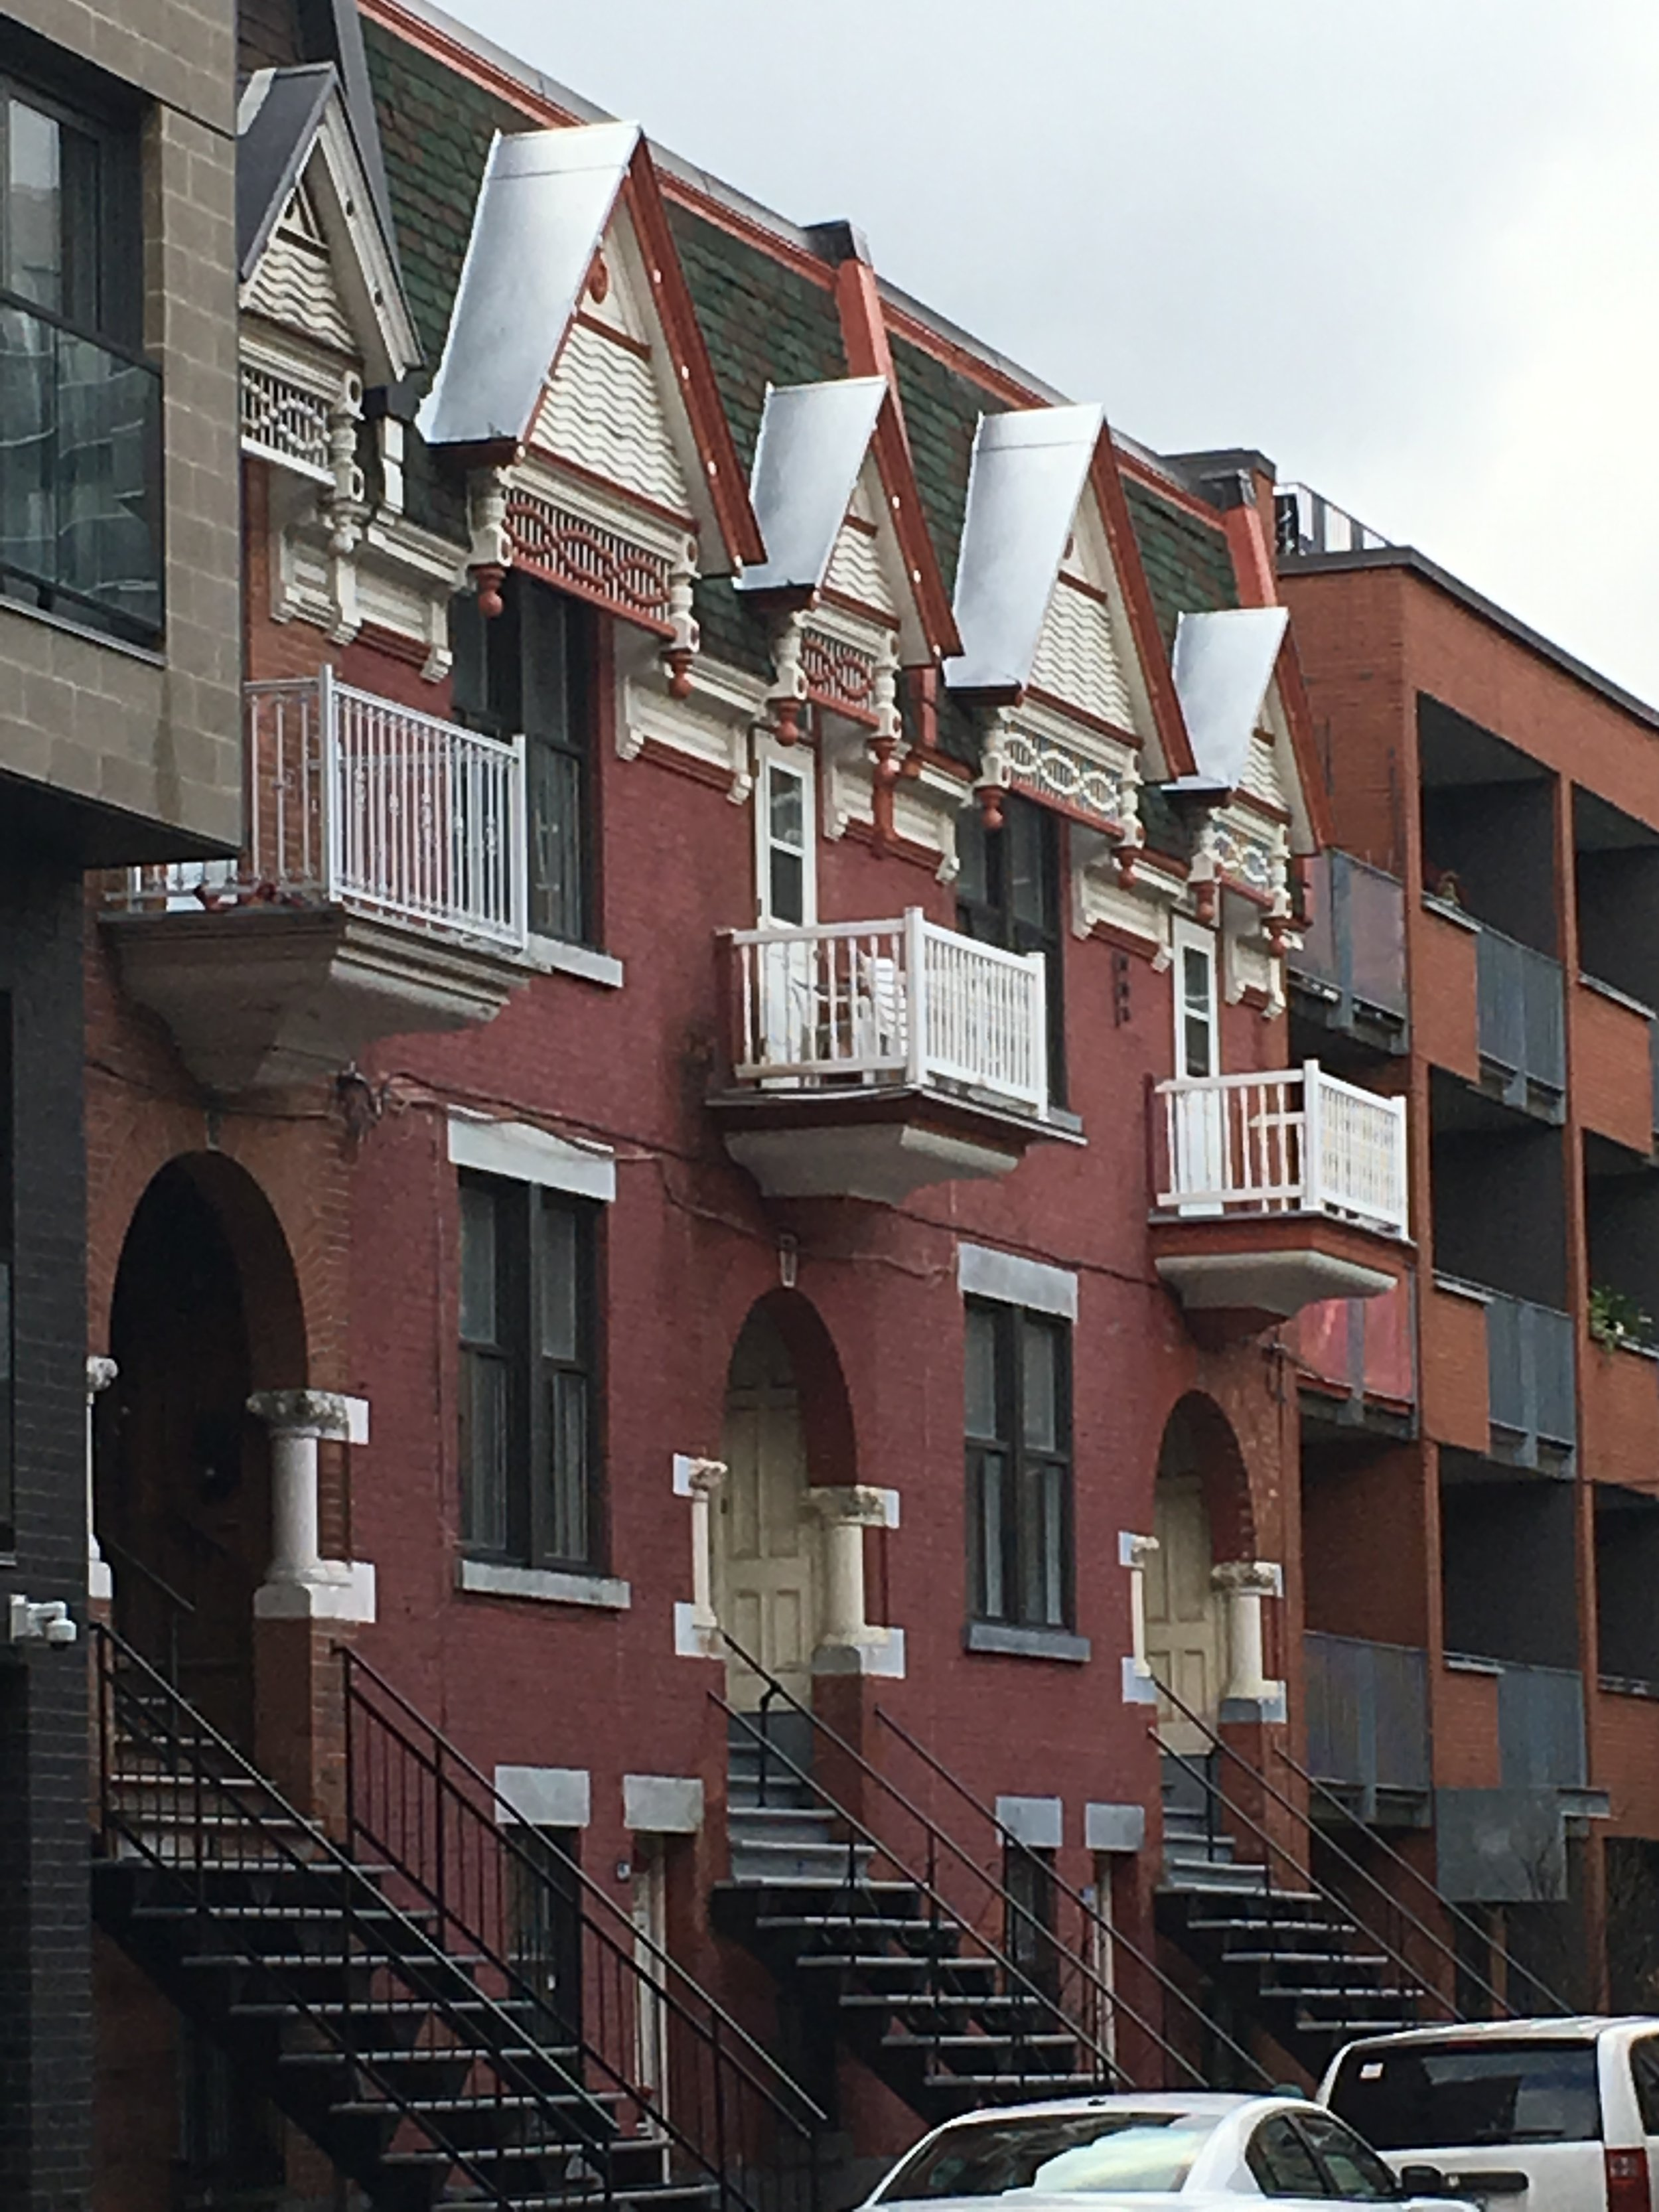 Fanciful row houses near our Airbnb in Montreal